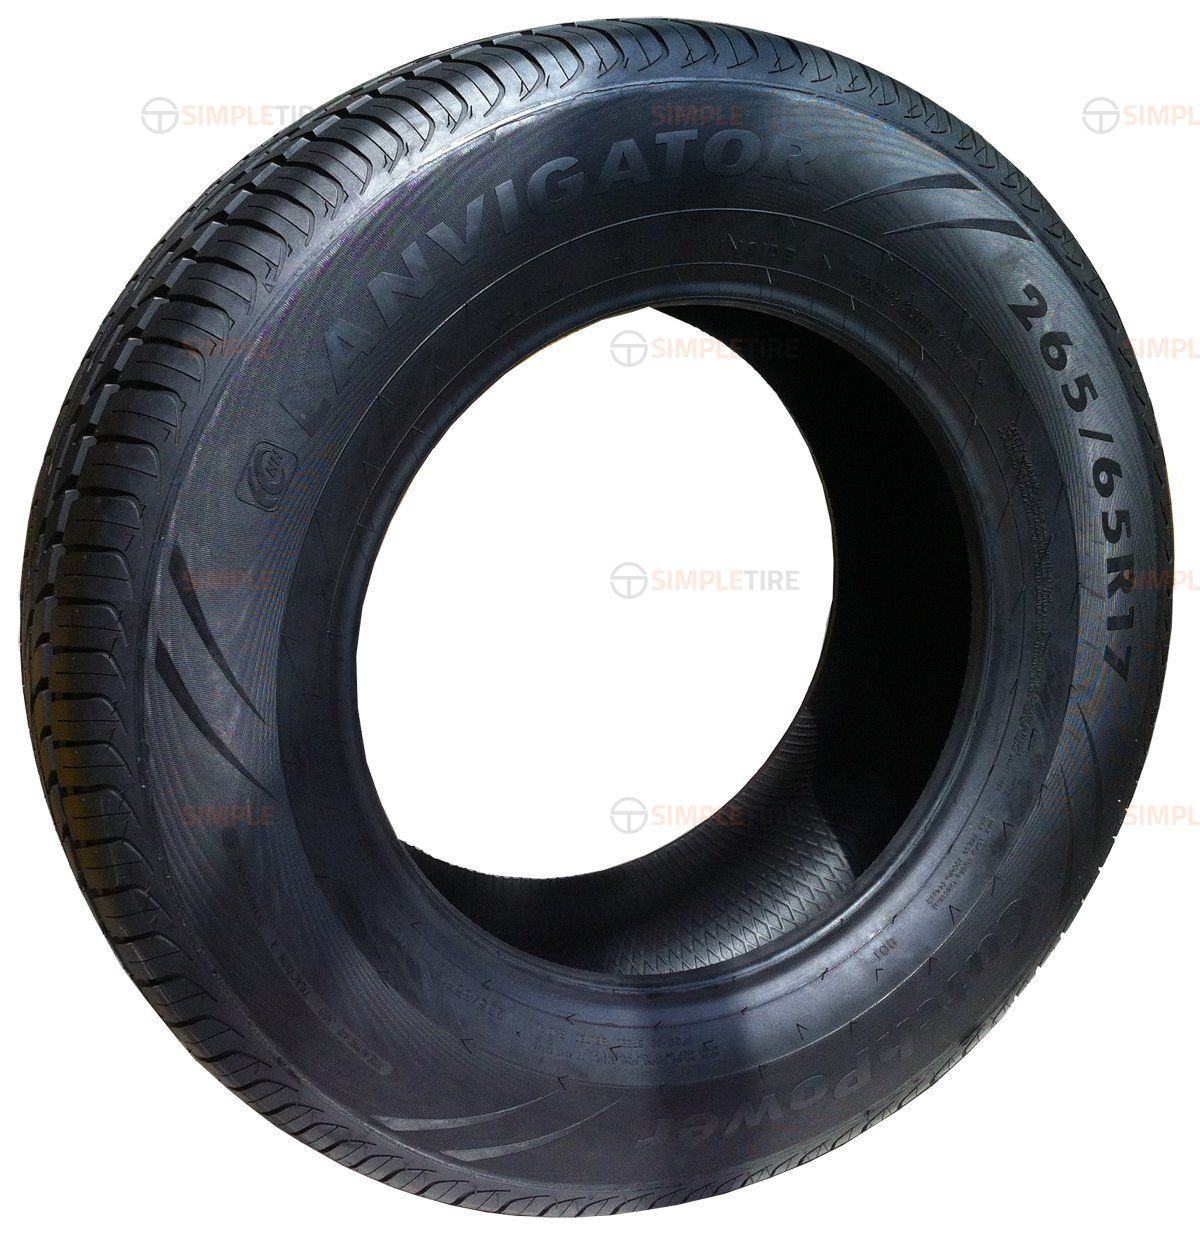 2855020L P285/50R20 Catch Power Lanvigator